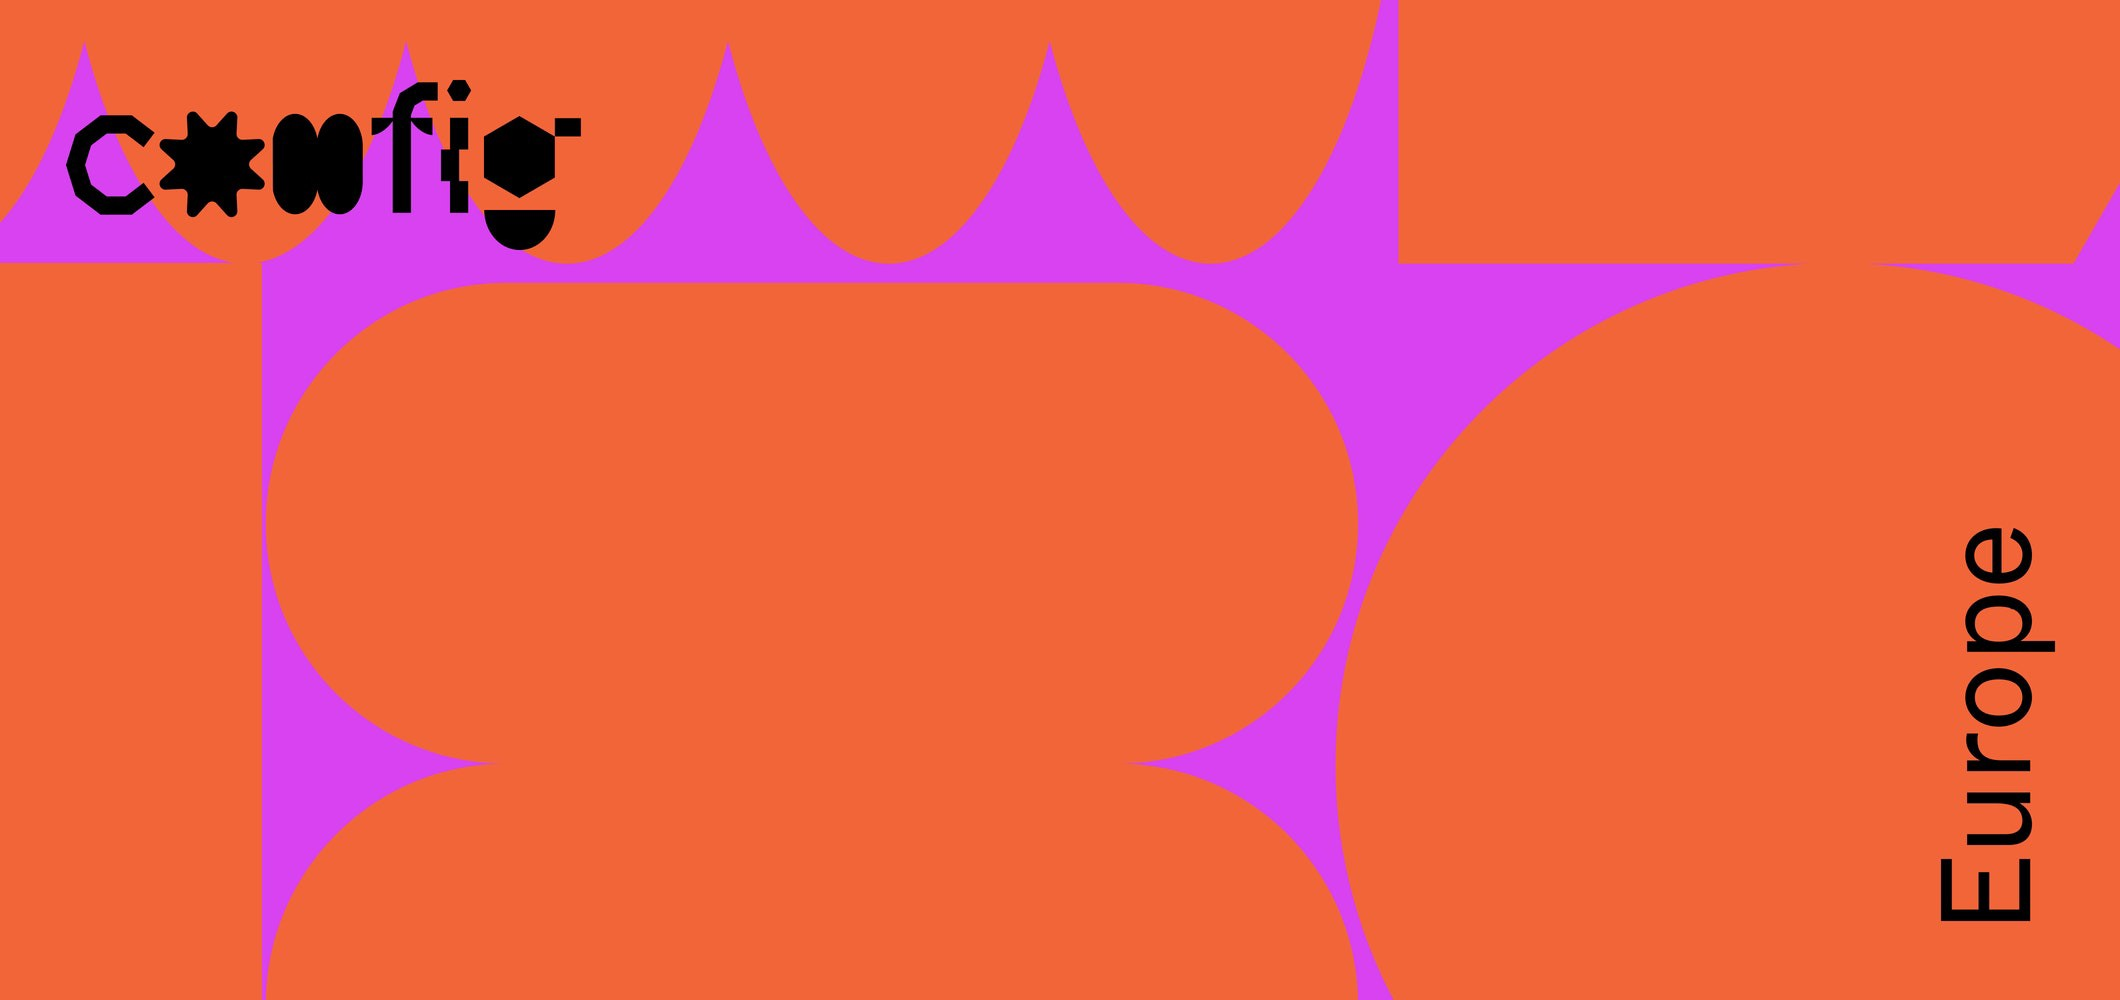 Config Europe artwork. Bold shapes in bright pink and orange.